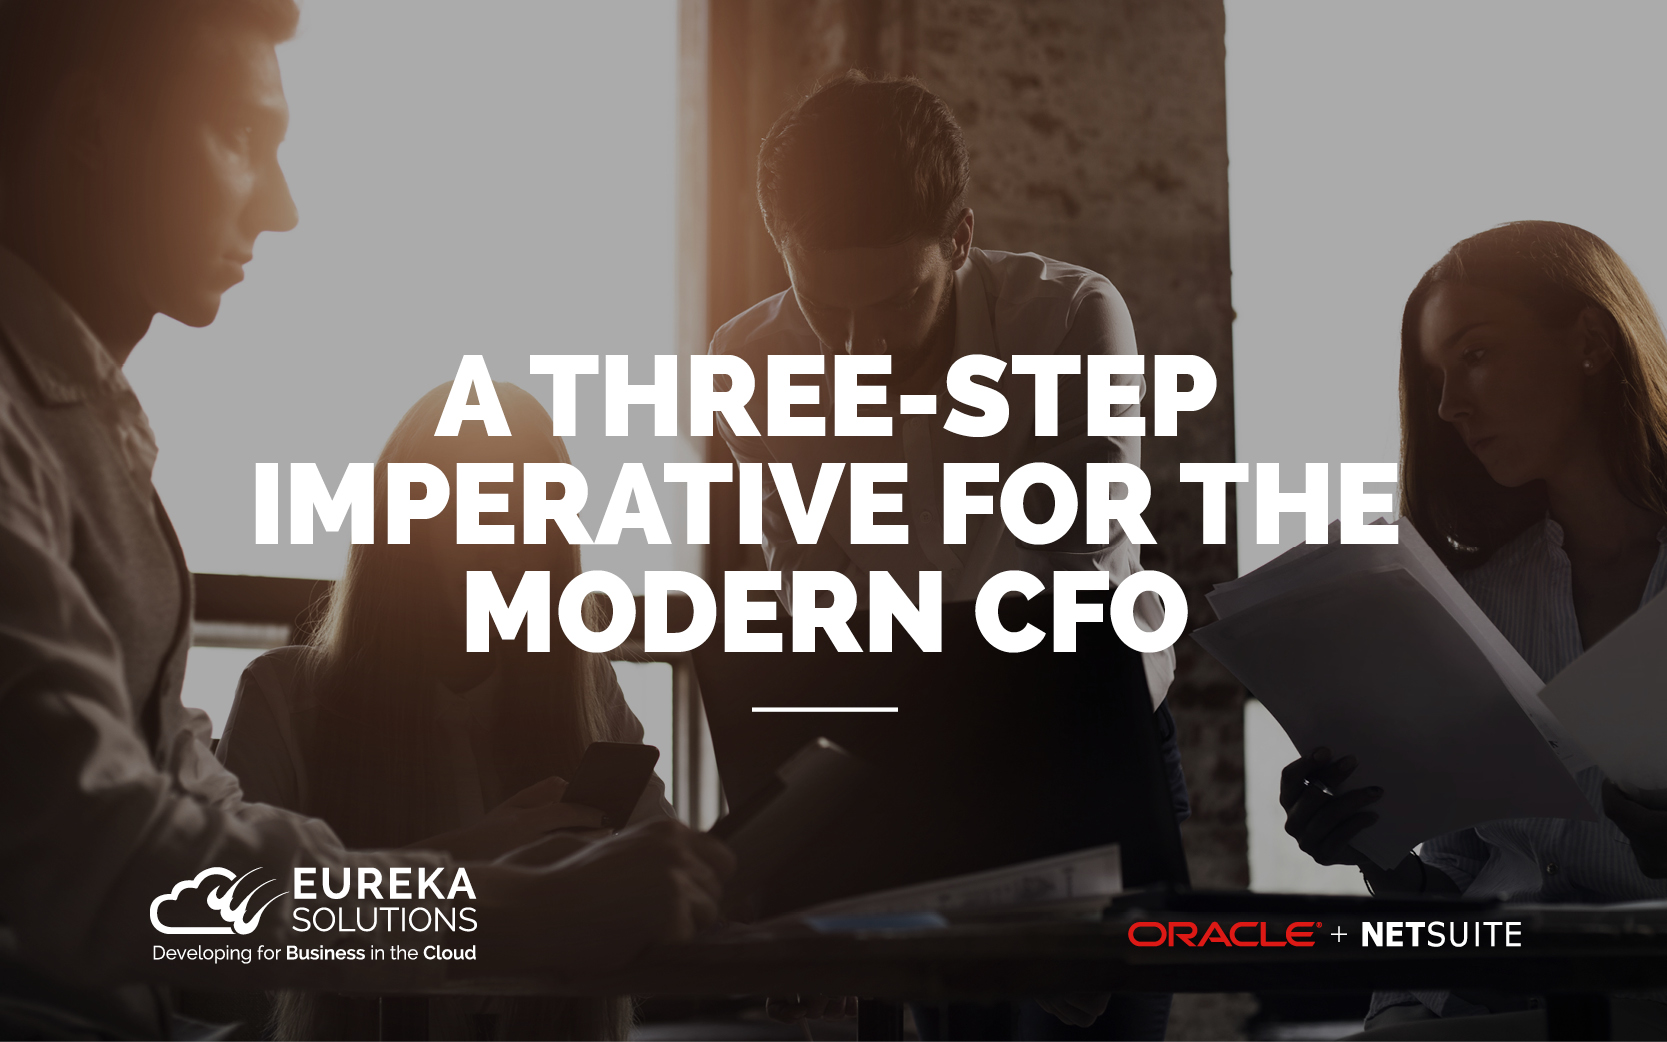 Lead, Transform, Operate: A Three-Step Imperative for the Modern CFO